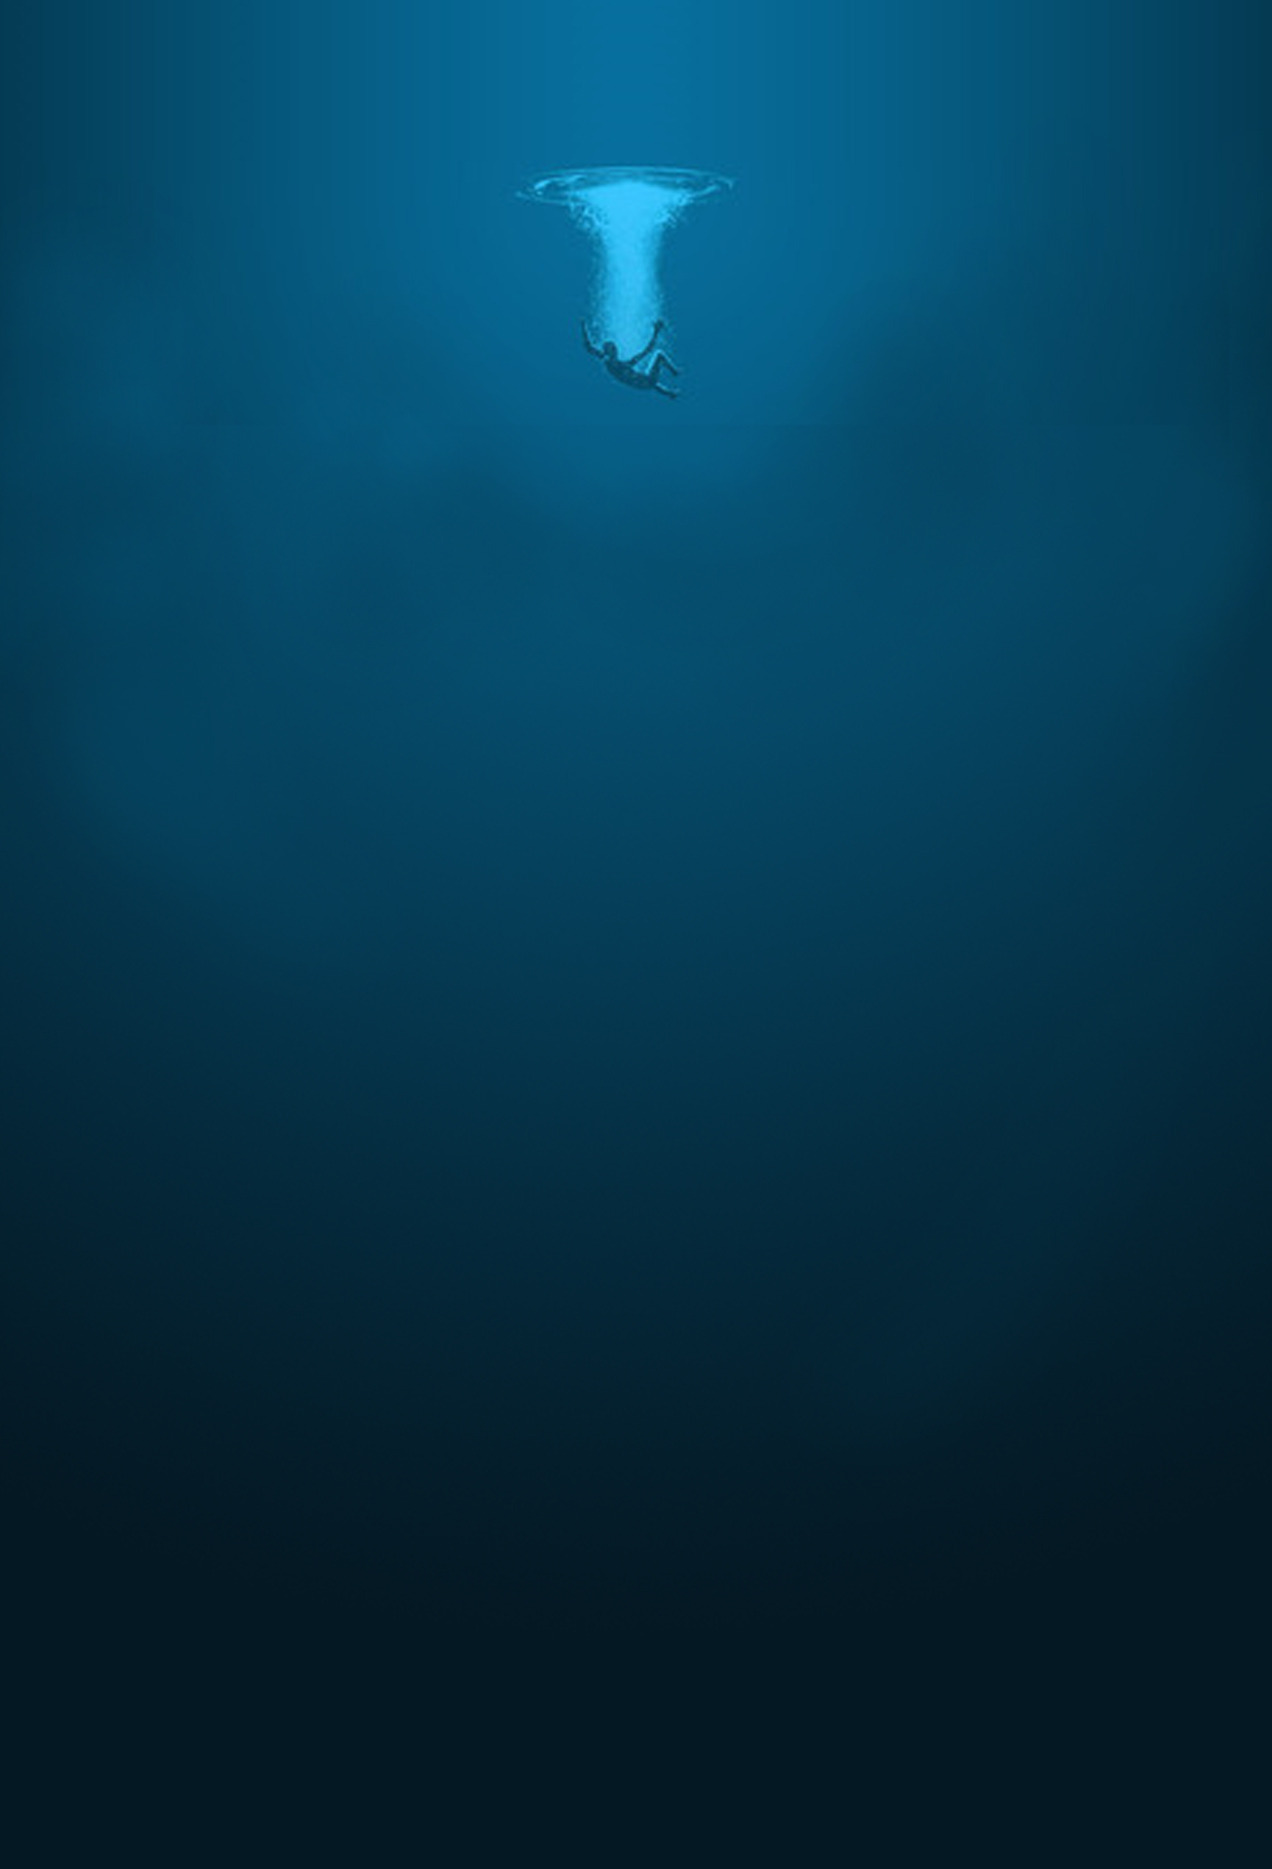 oceanatdusk:  This is why the ocean scares me so much its not the sharks, nor the giant fucking squid its just the vast emptiness